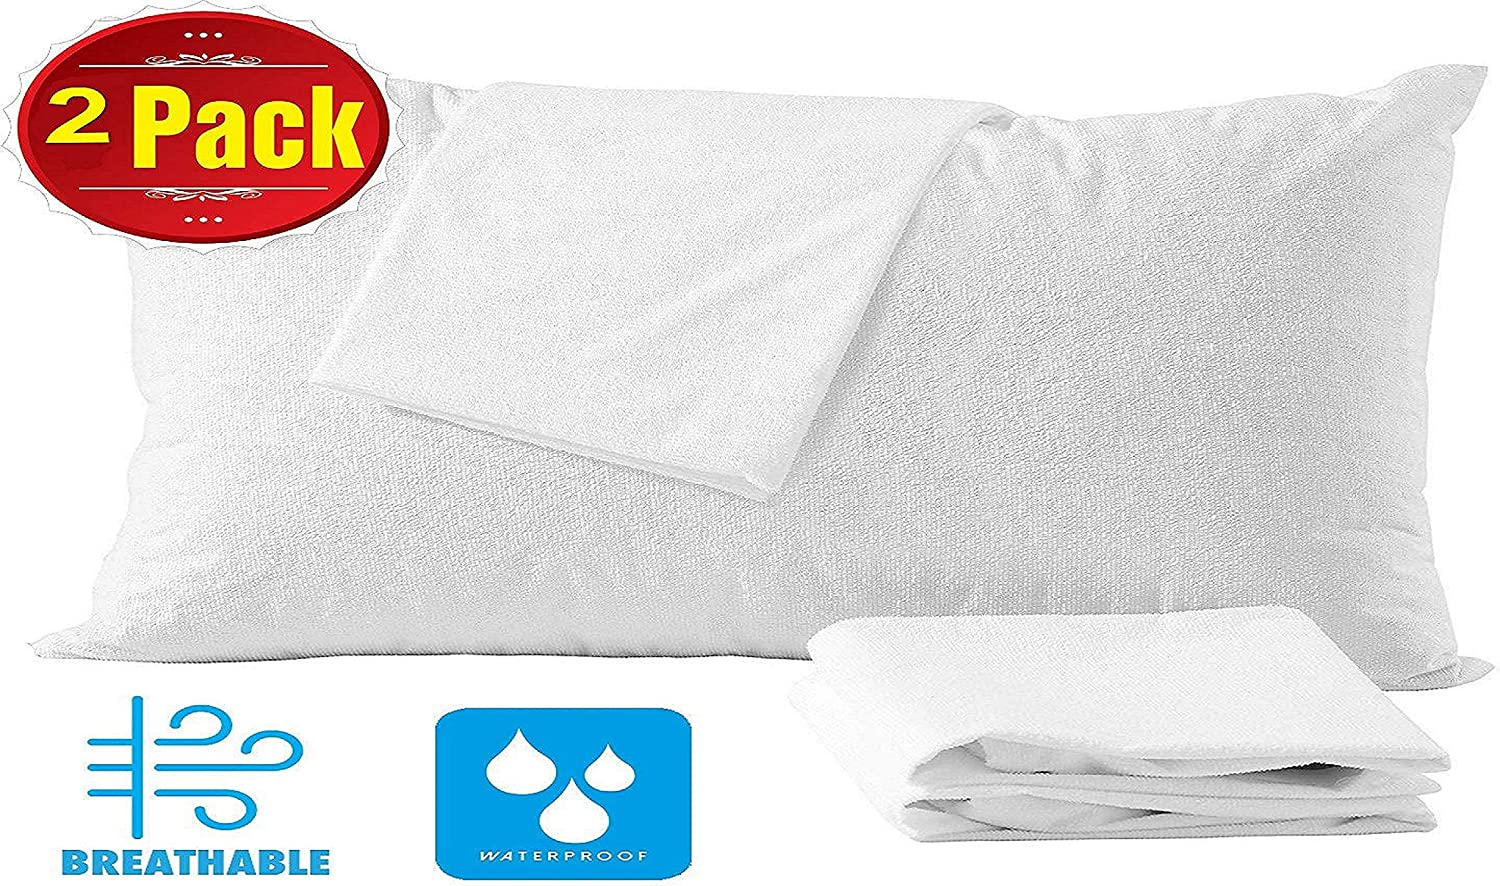 MMSD 4 Pack Cotton King Pillow Protectors 100% Waterproof Life Time Replacement Zippered Cotton White Terry Pillow Encasement Washable Long Life Soft Breathable Fabric Set: Amazon.es: Hogar